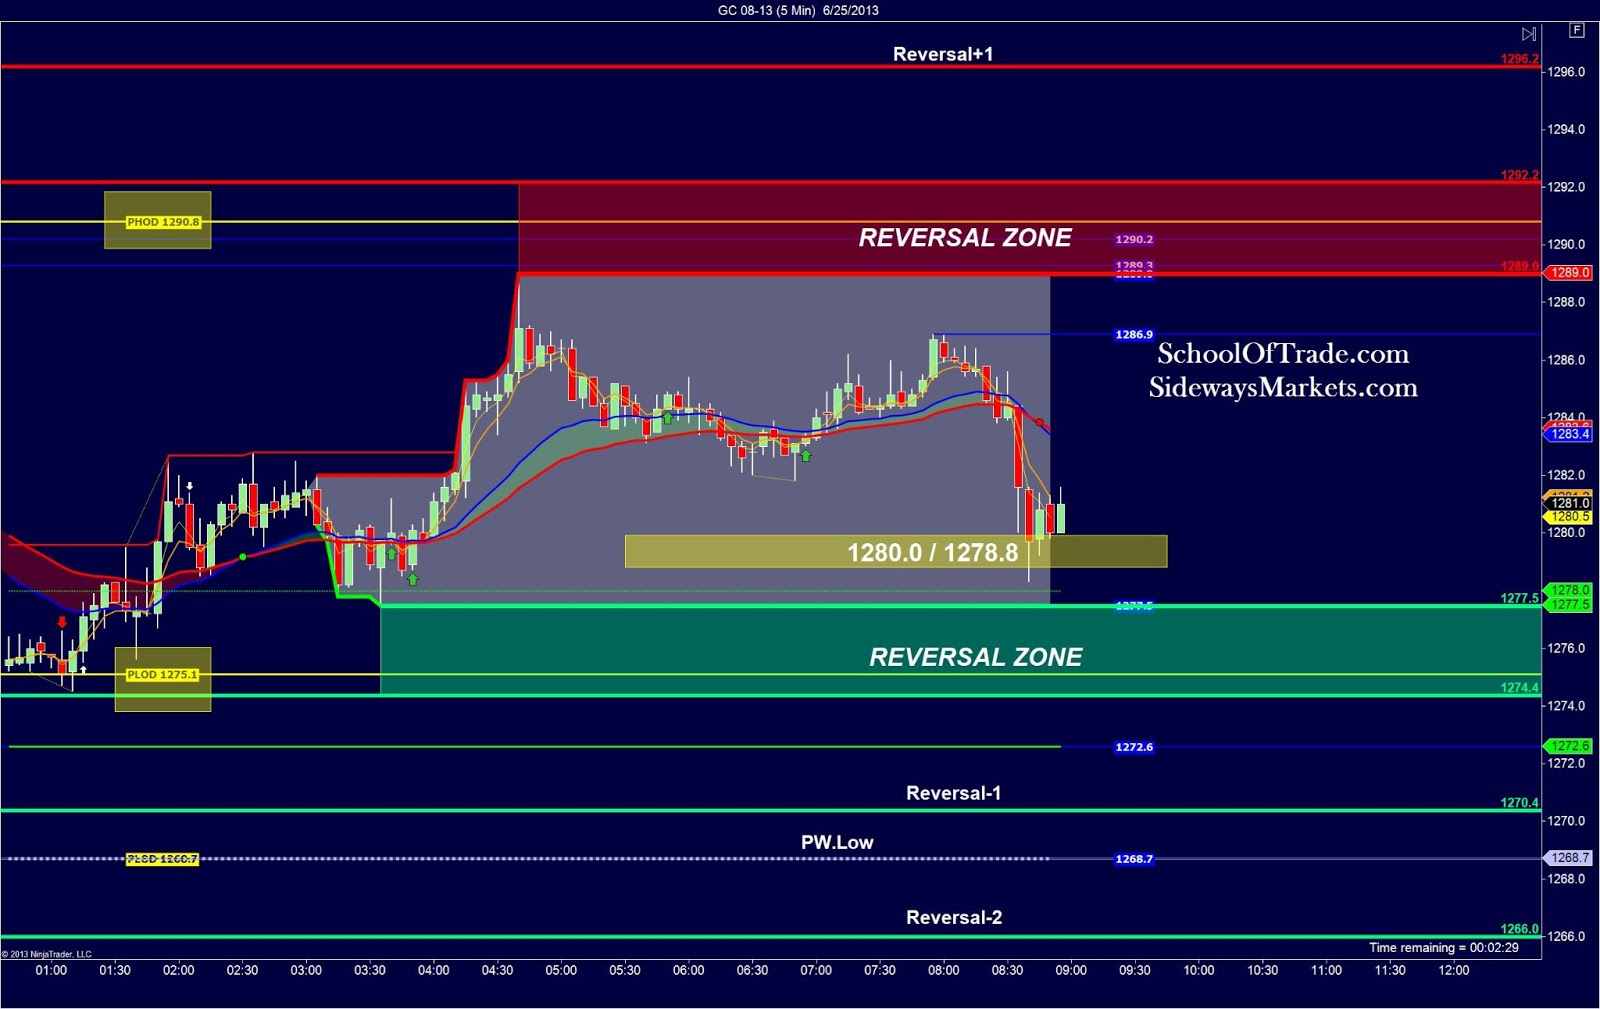 Gold Day trading strategy – Sideways Markets